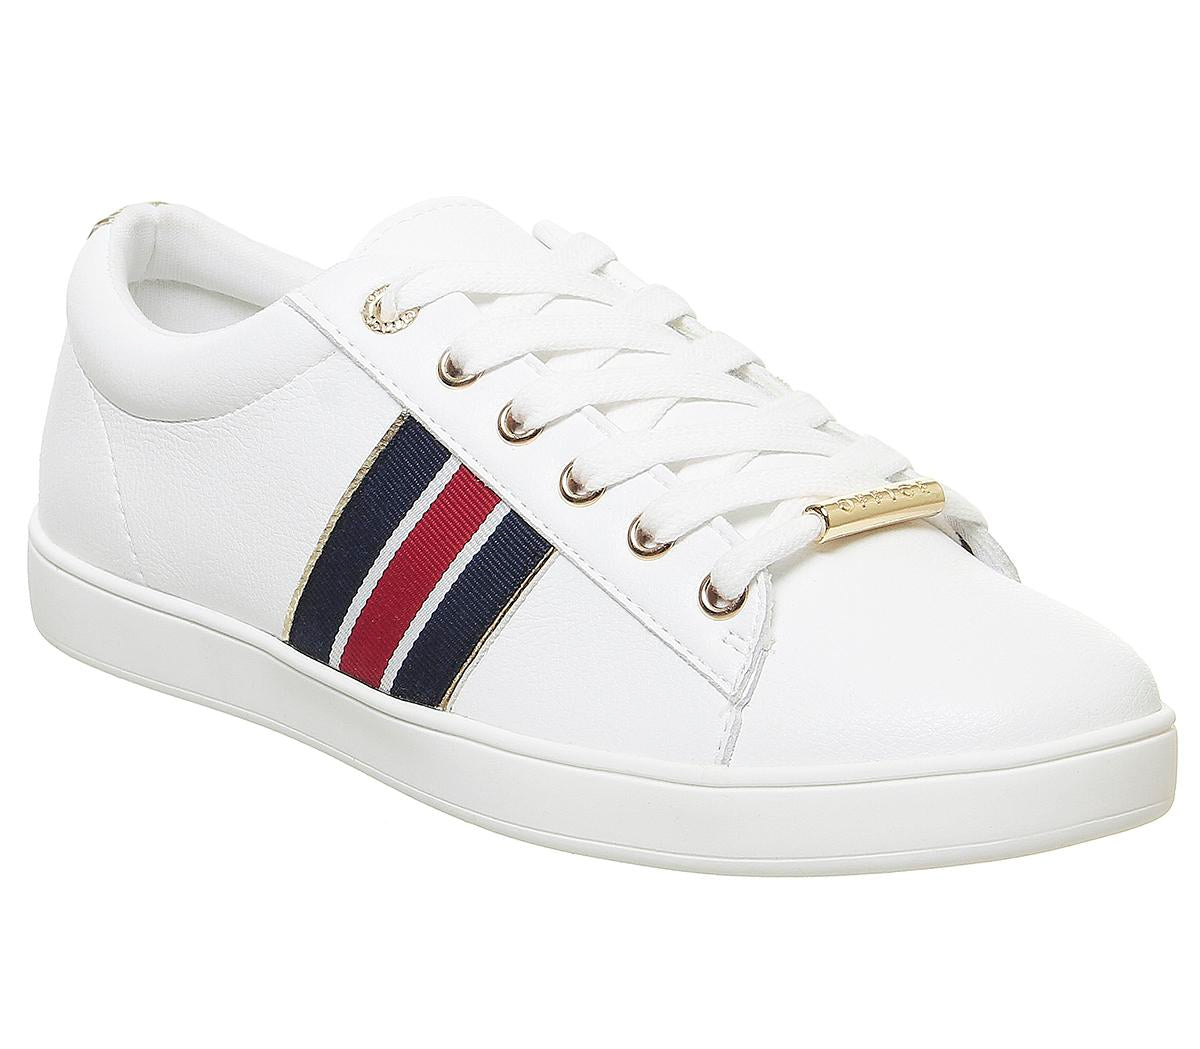 Womens Office Farewell Lace Up Trainer White Navy Red